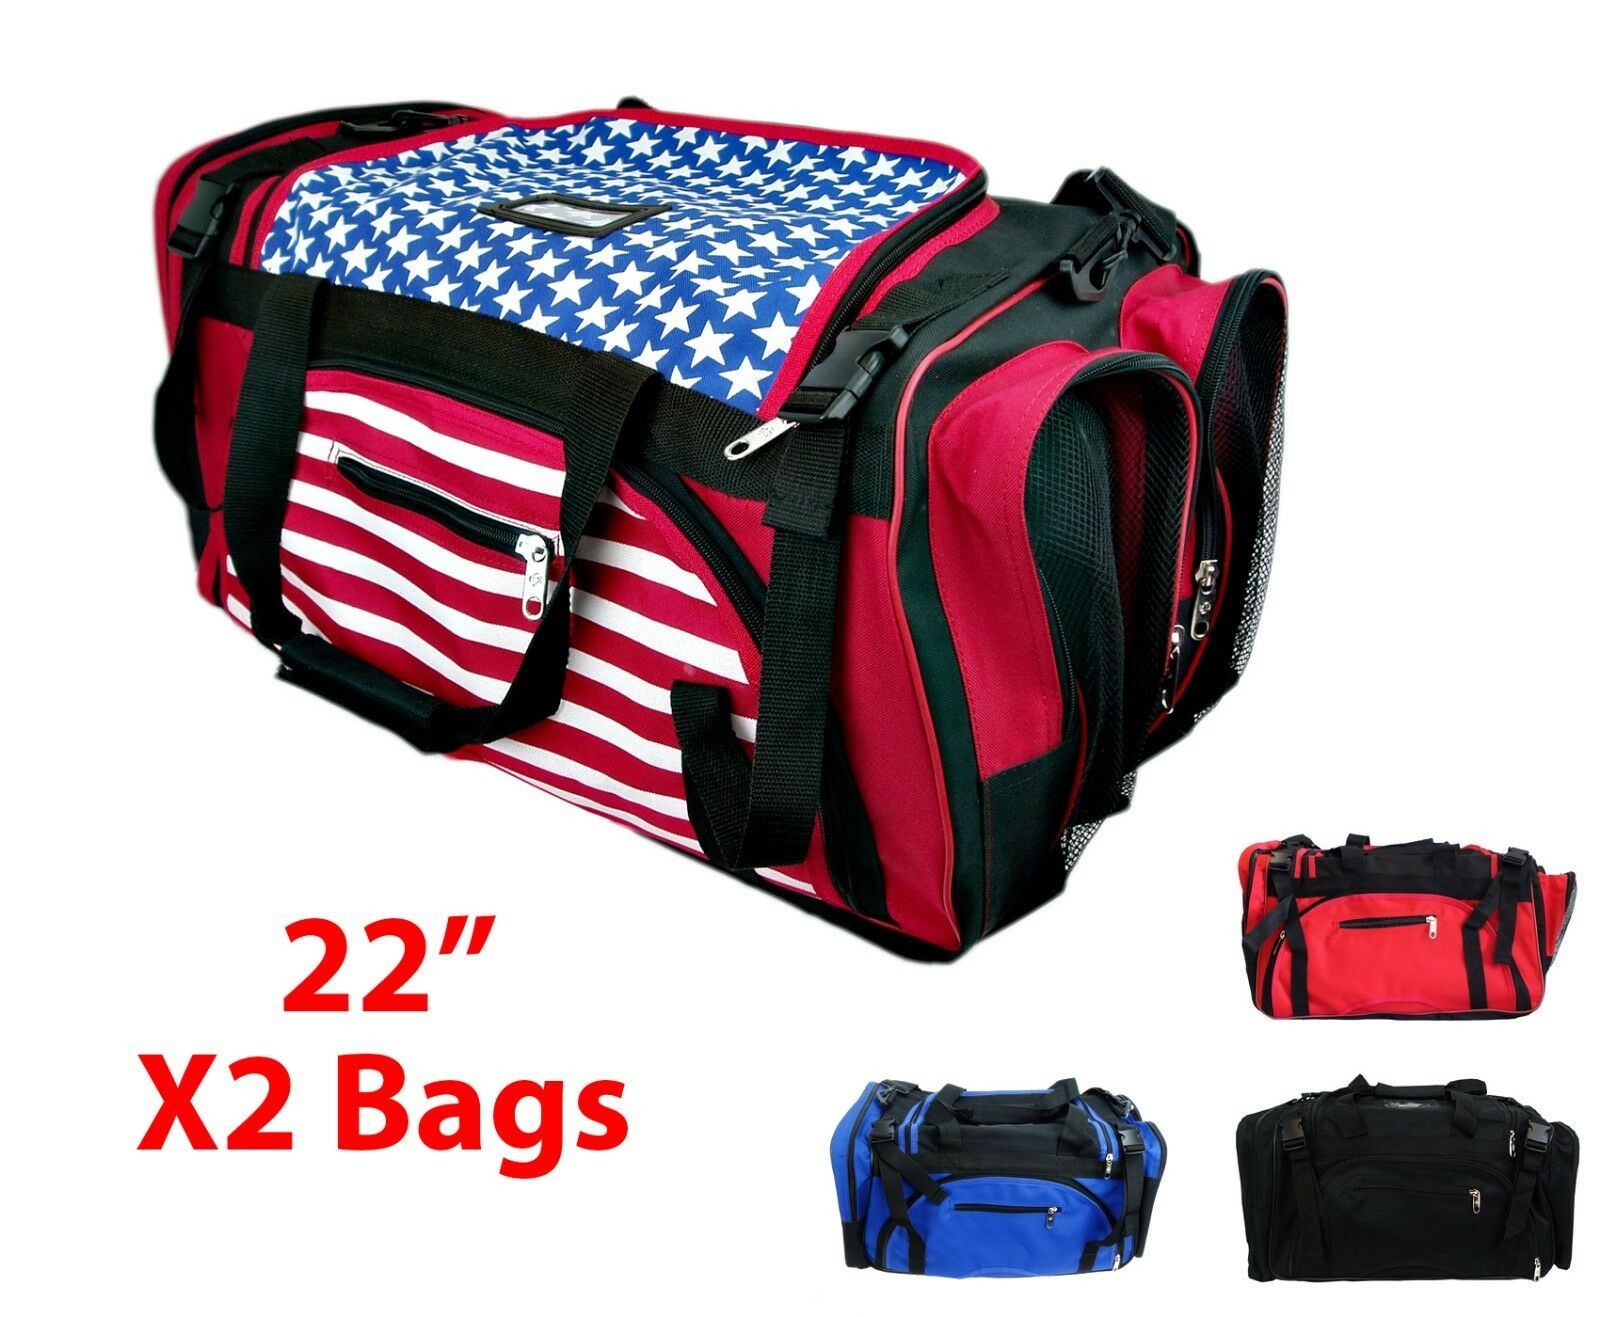 X2 High Quality  Equipment Gear Bag Taekwondo Karate MMA Martial Arts Travel 22   up to 50% off